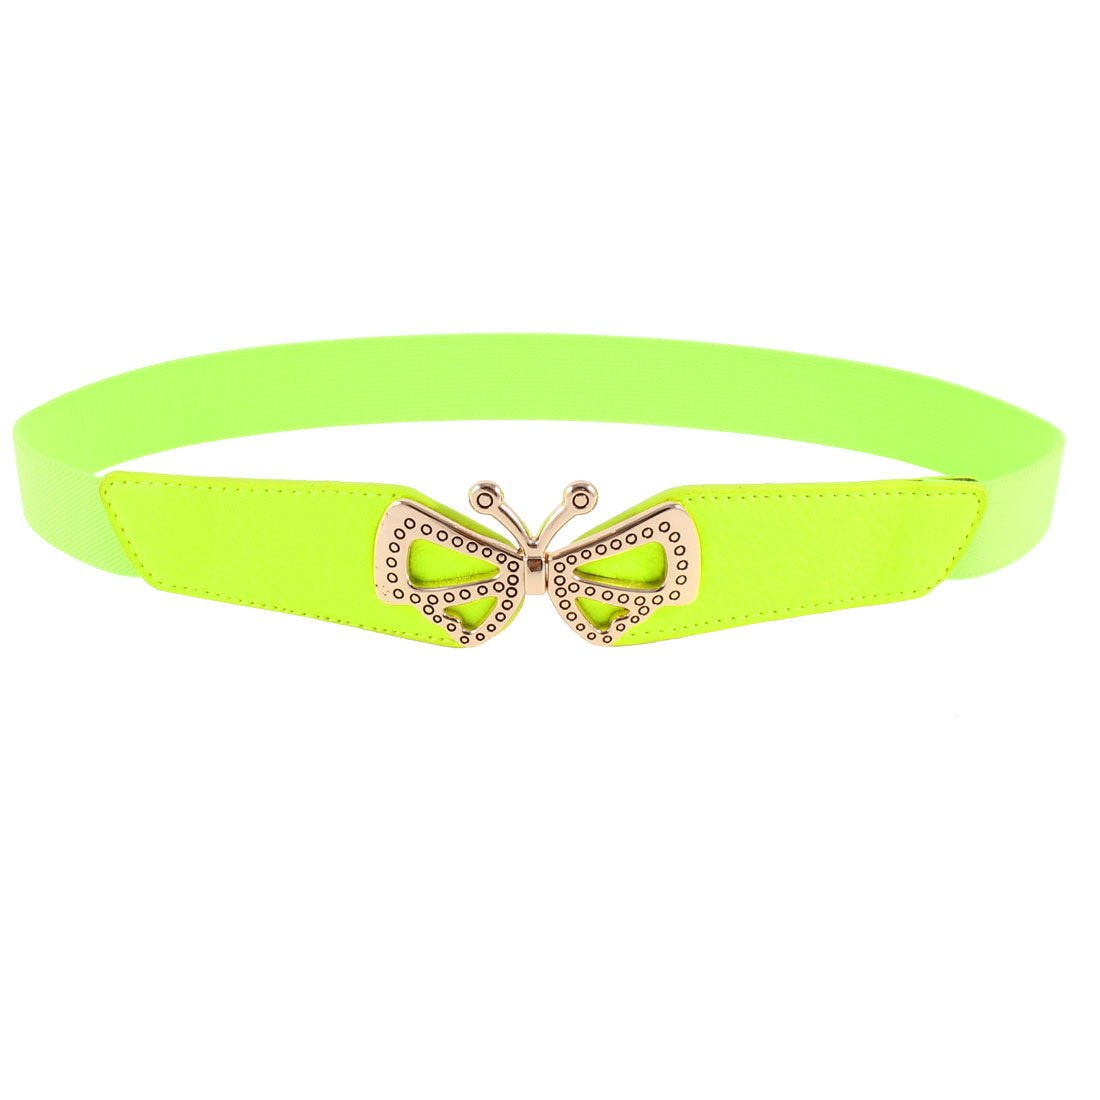 Ladies Butterfly Shaped Metal Interlocking Buckle Stretchy Waist Belt Green